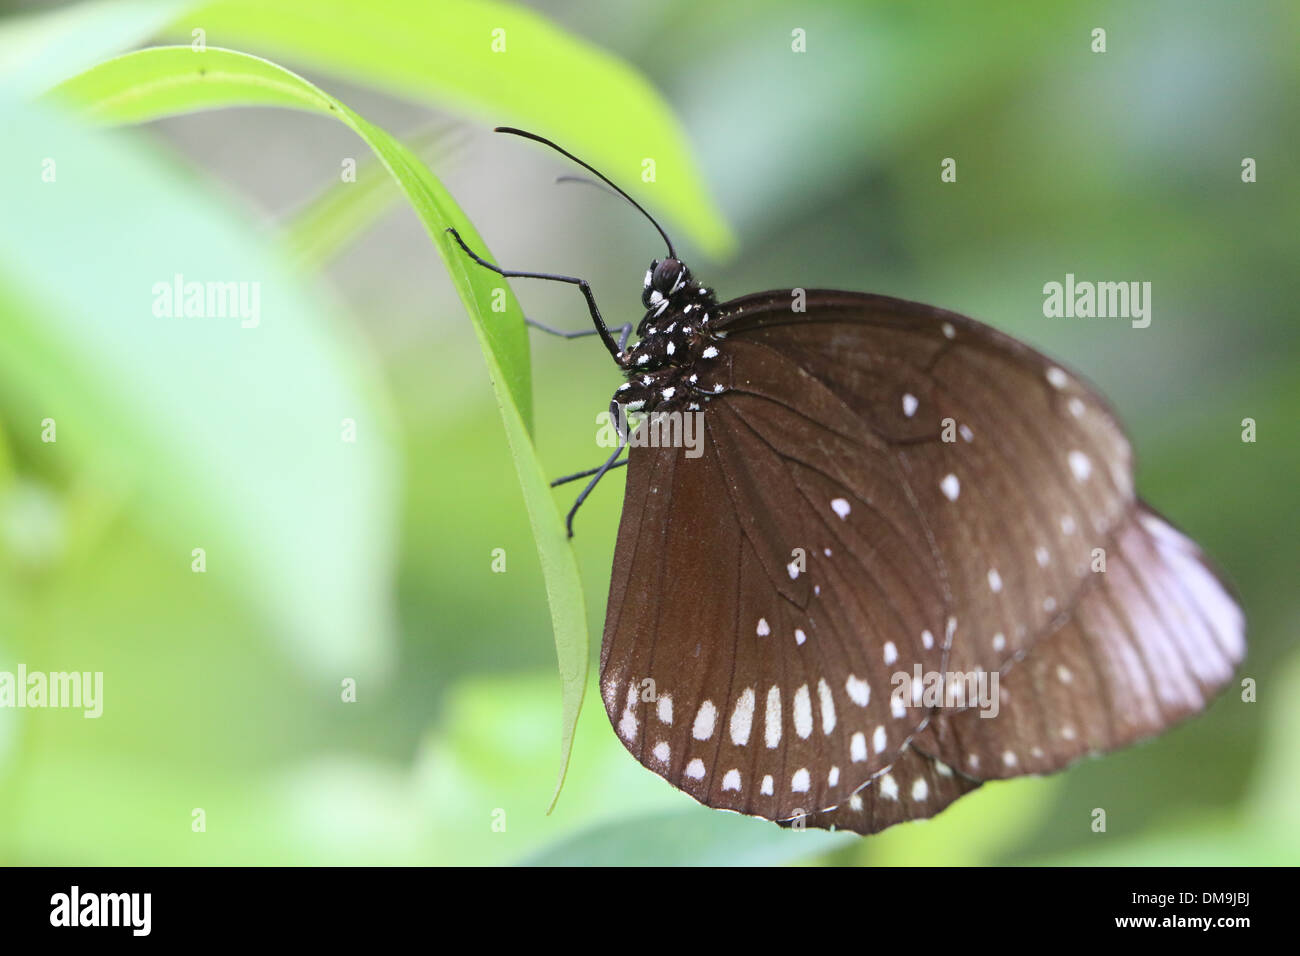 Common Crow butterfly a.k.a. Common Indian or Australian Crow ( Euploea core) with opened wings - Stock Image